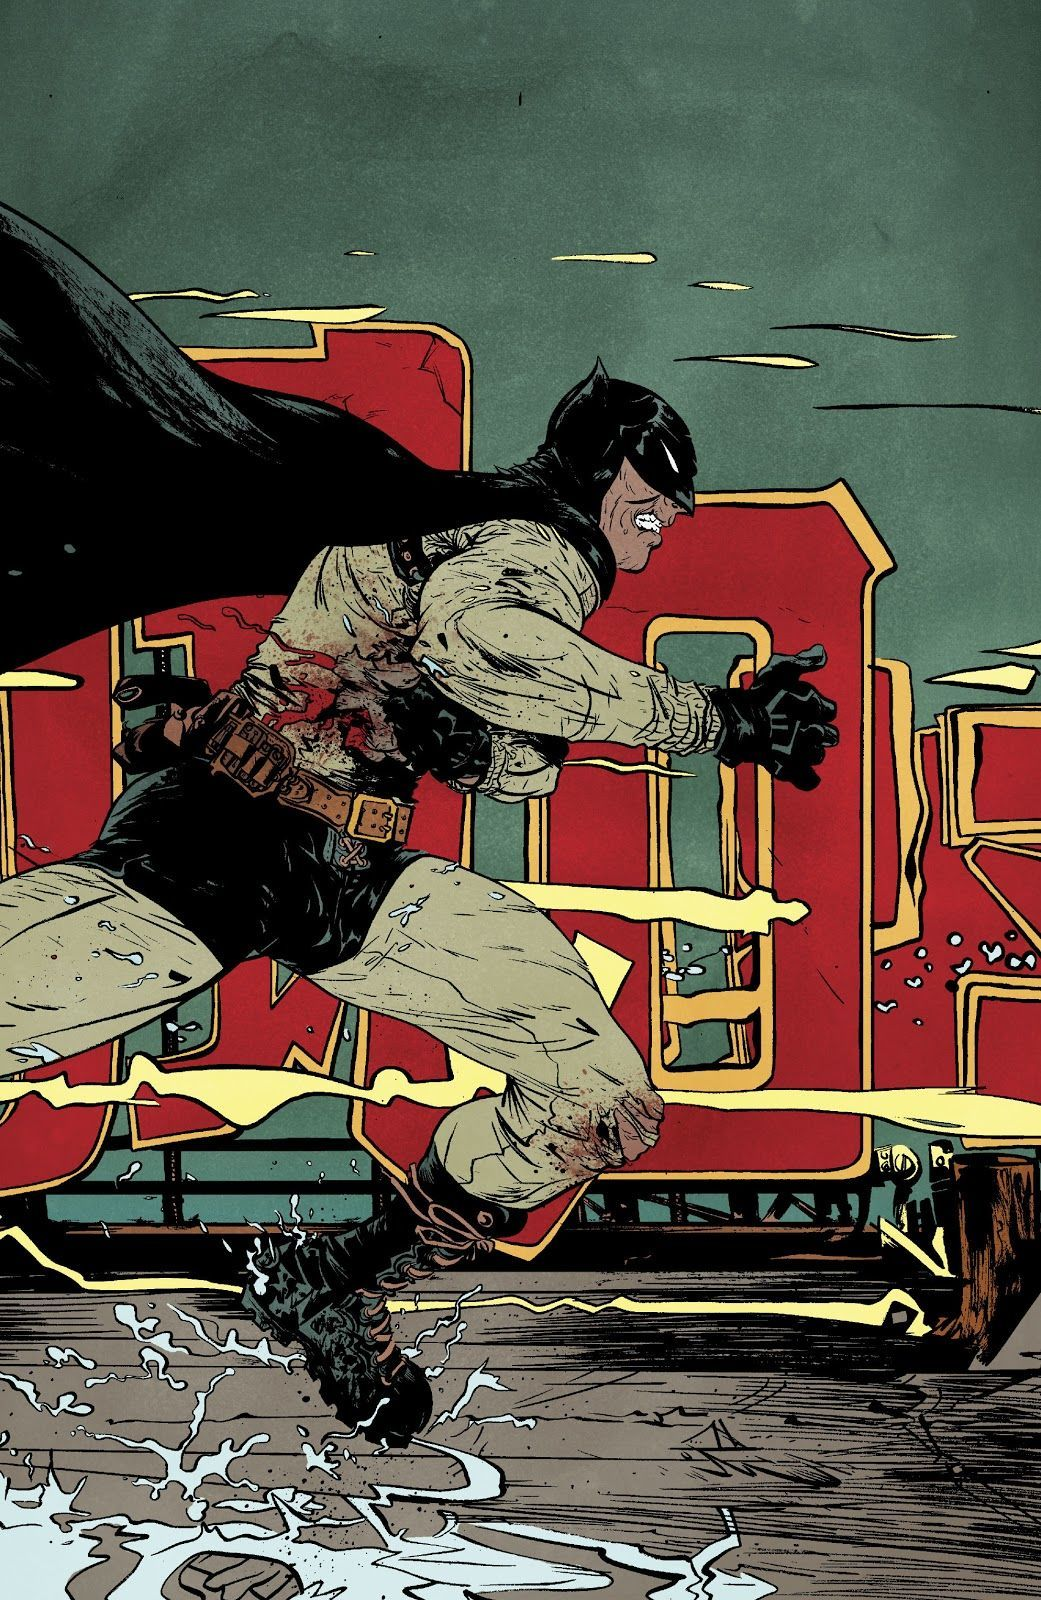 Batman: Year 100 (Writer: Paul Pope, Artists: Paul Pope)